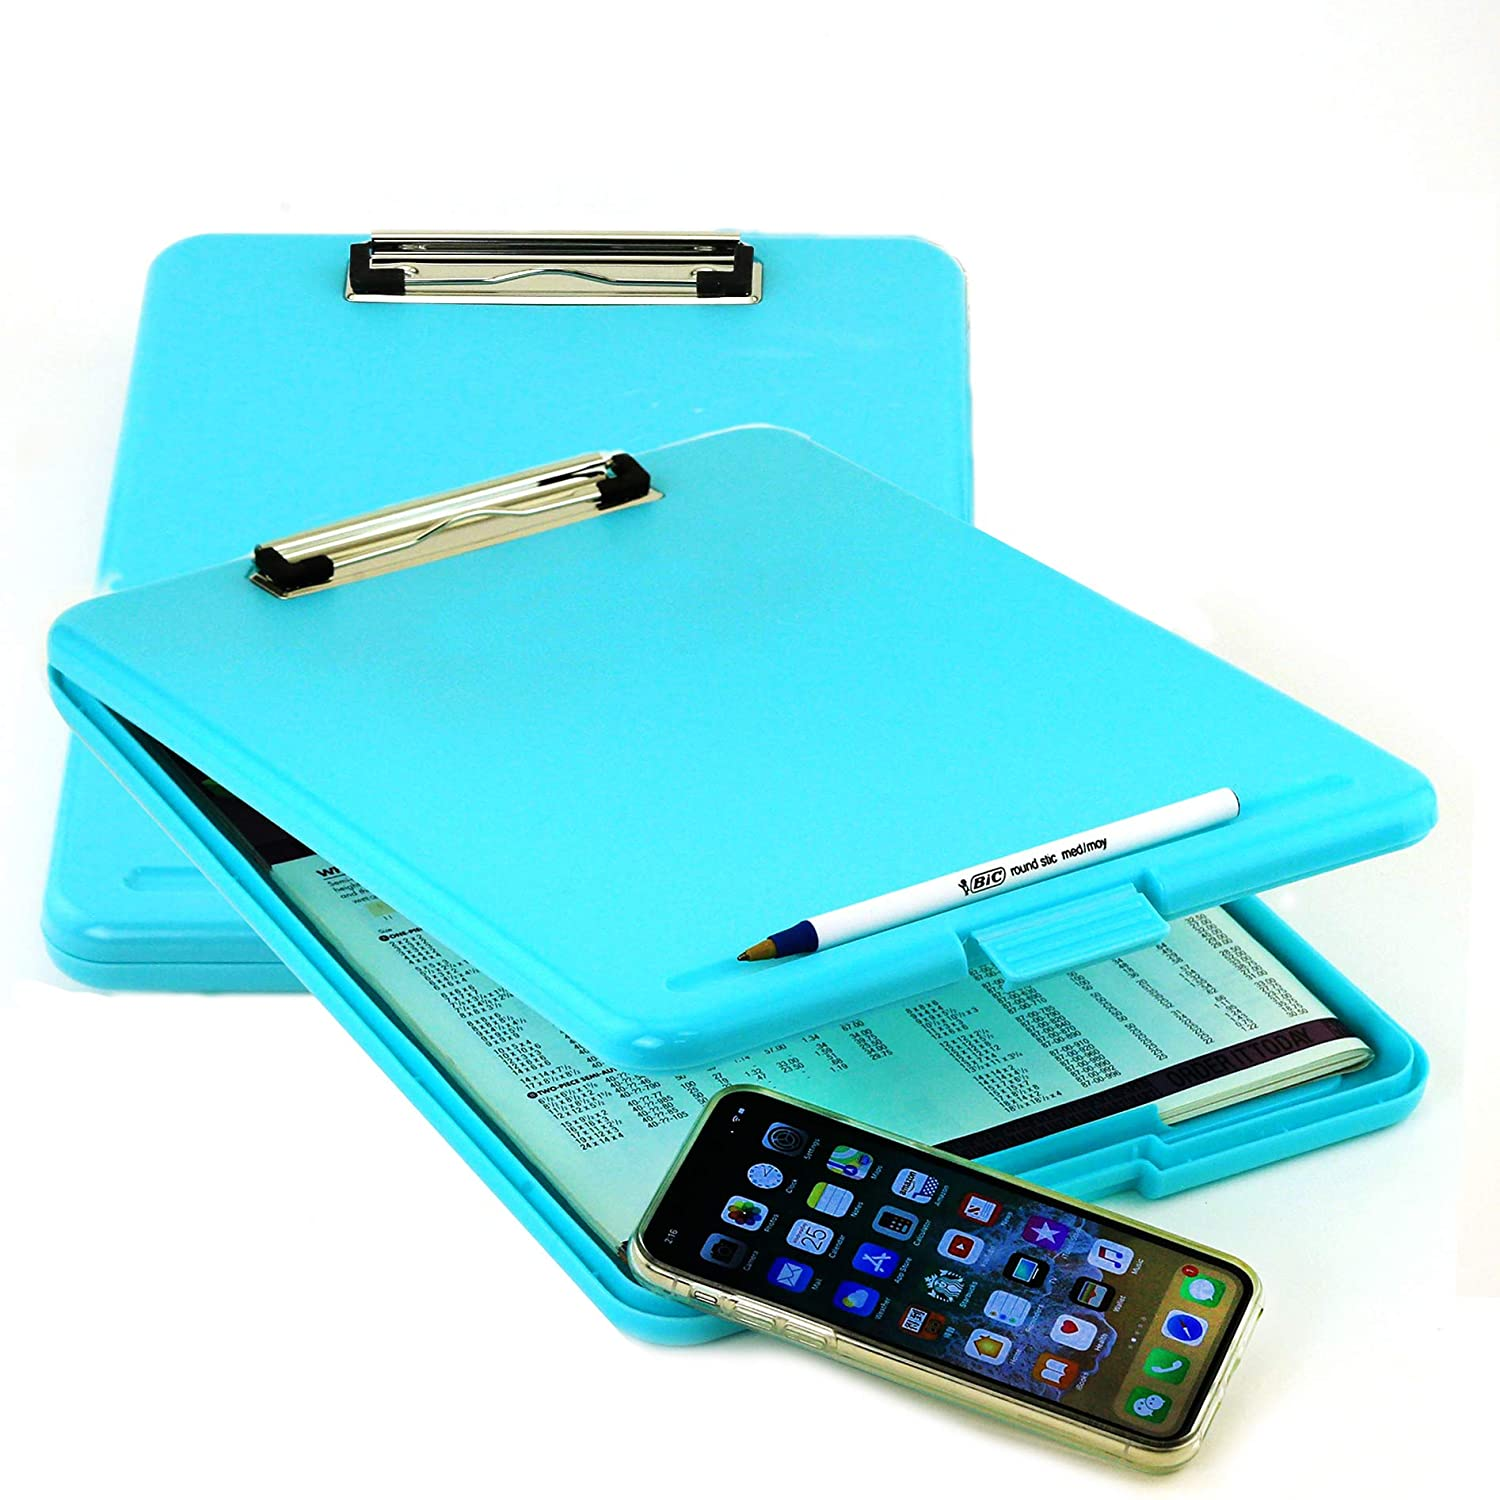 2PC Letter Size Plastic Storage Clipboard with Built-in Pen Holder (Blue) Praise